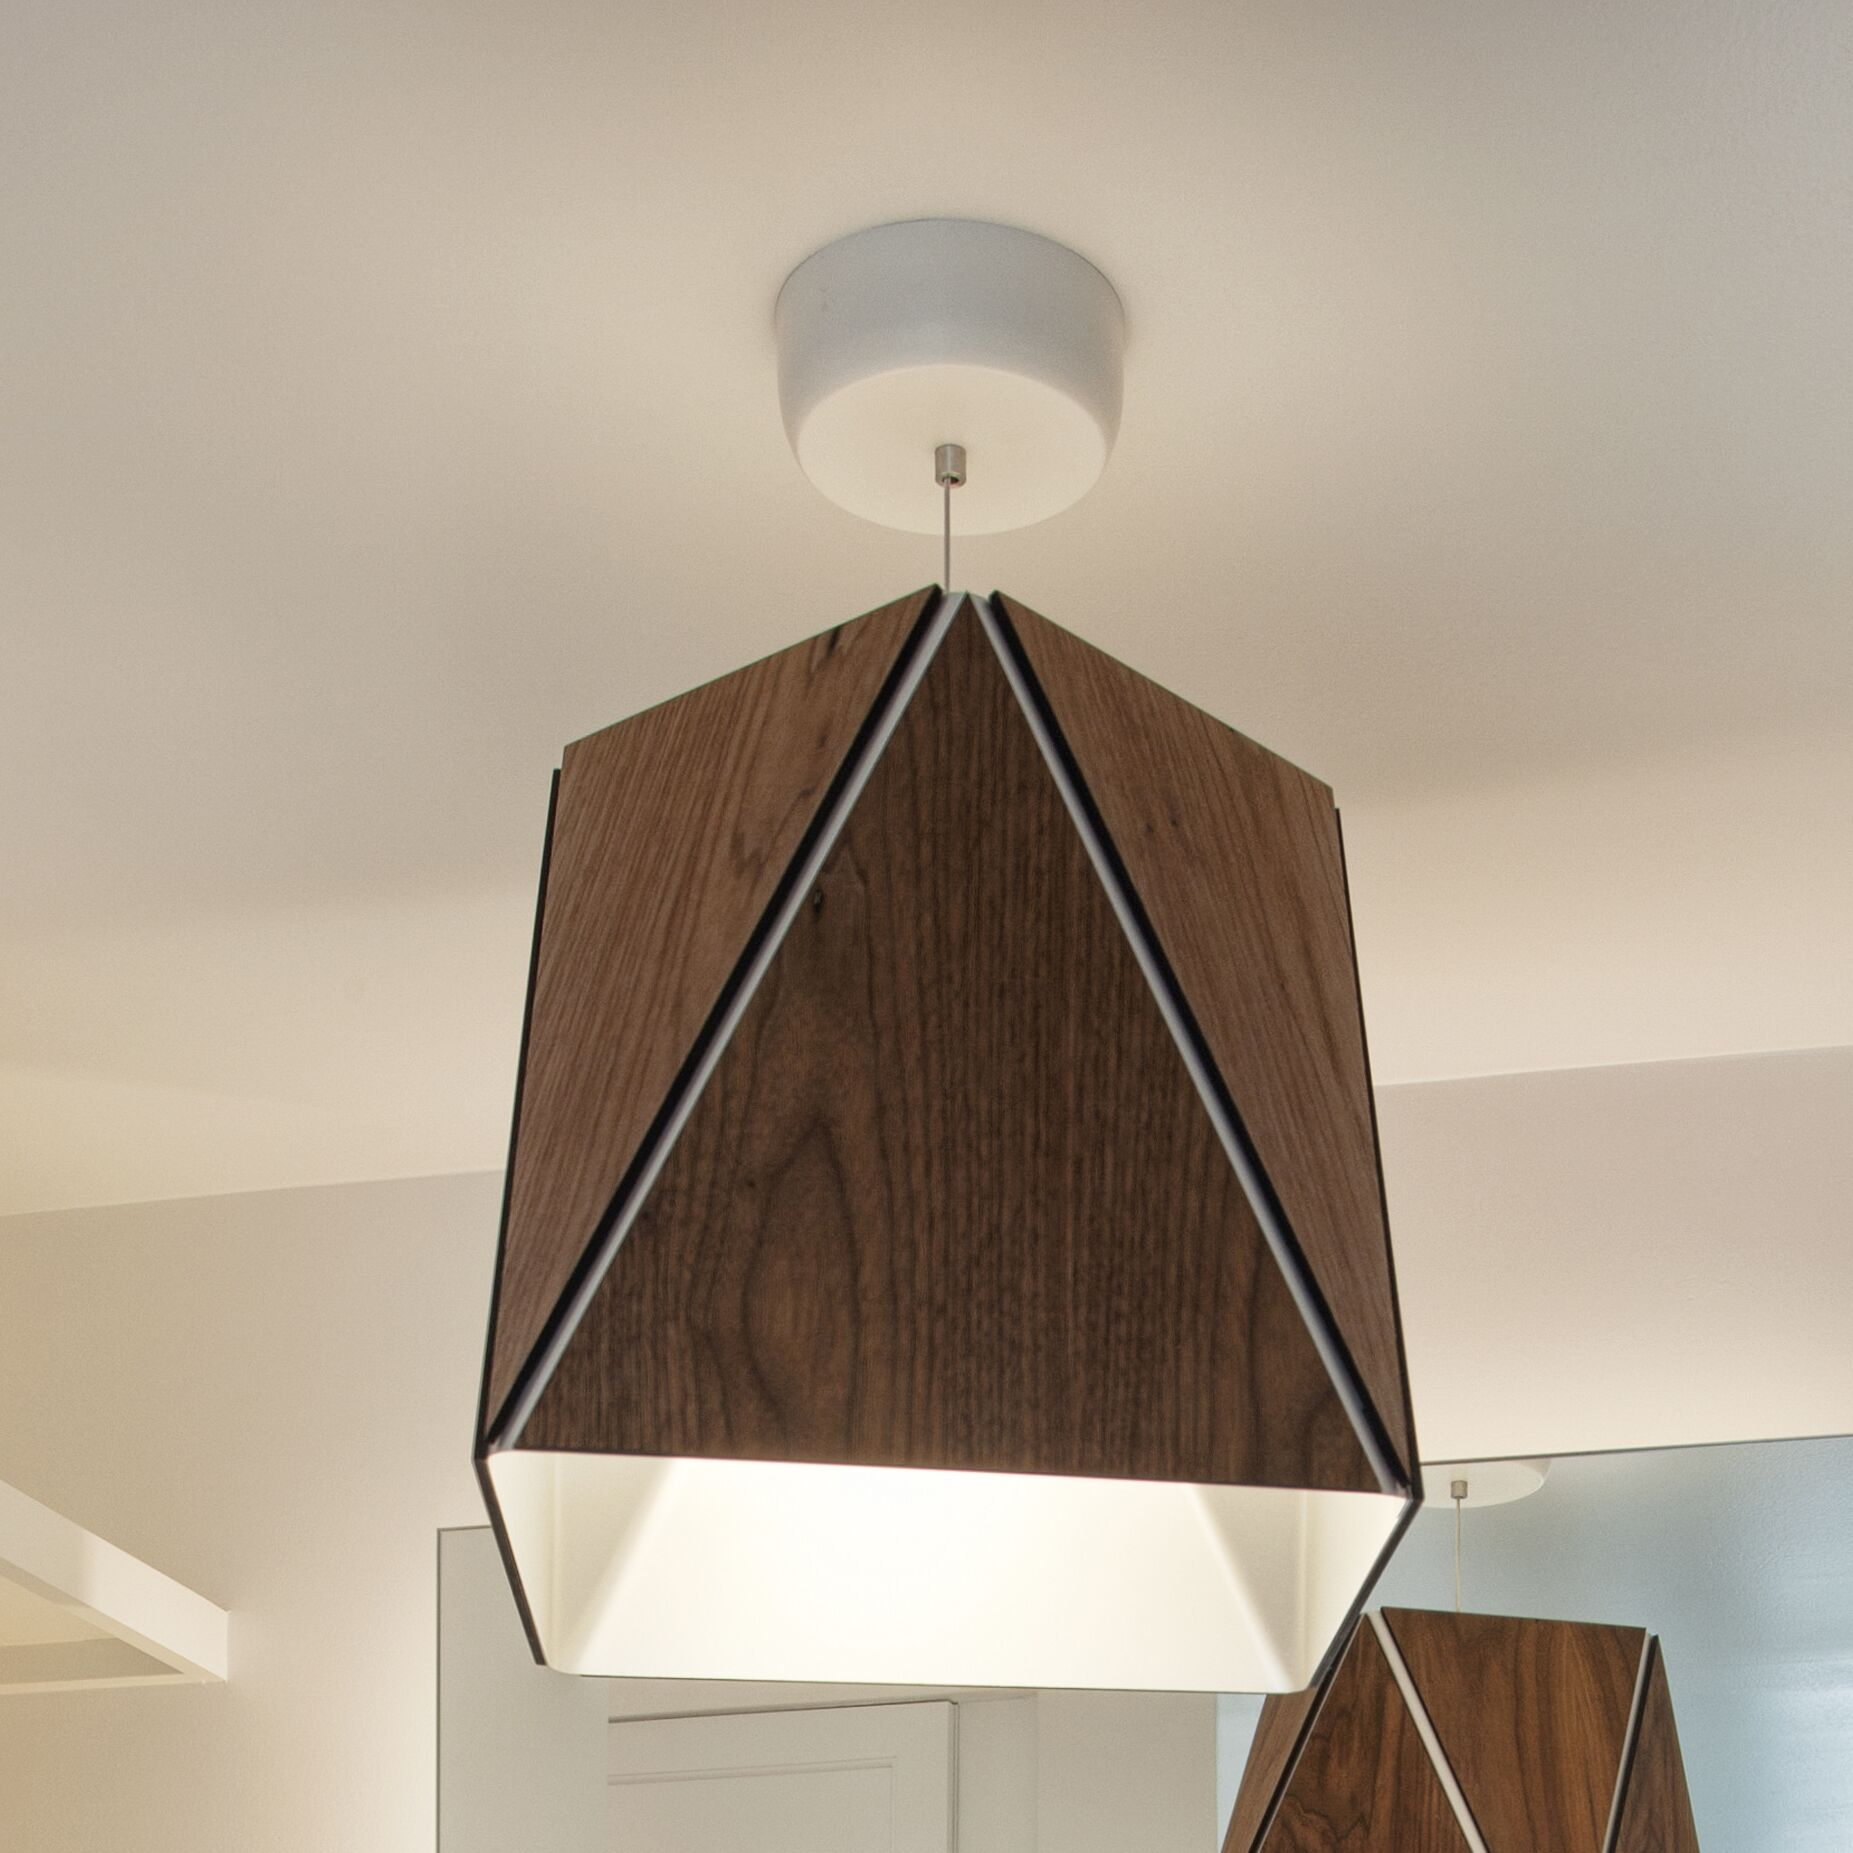 Calx 1-Light  LED  Pendant Finish: Dark Stained Walnut/Brushed Aluminum